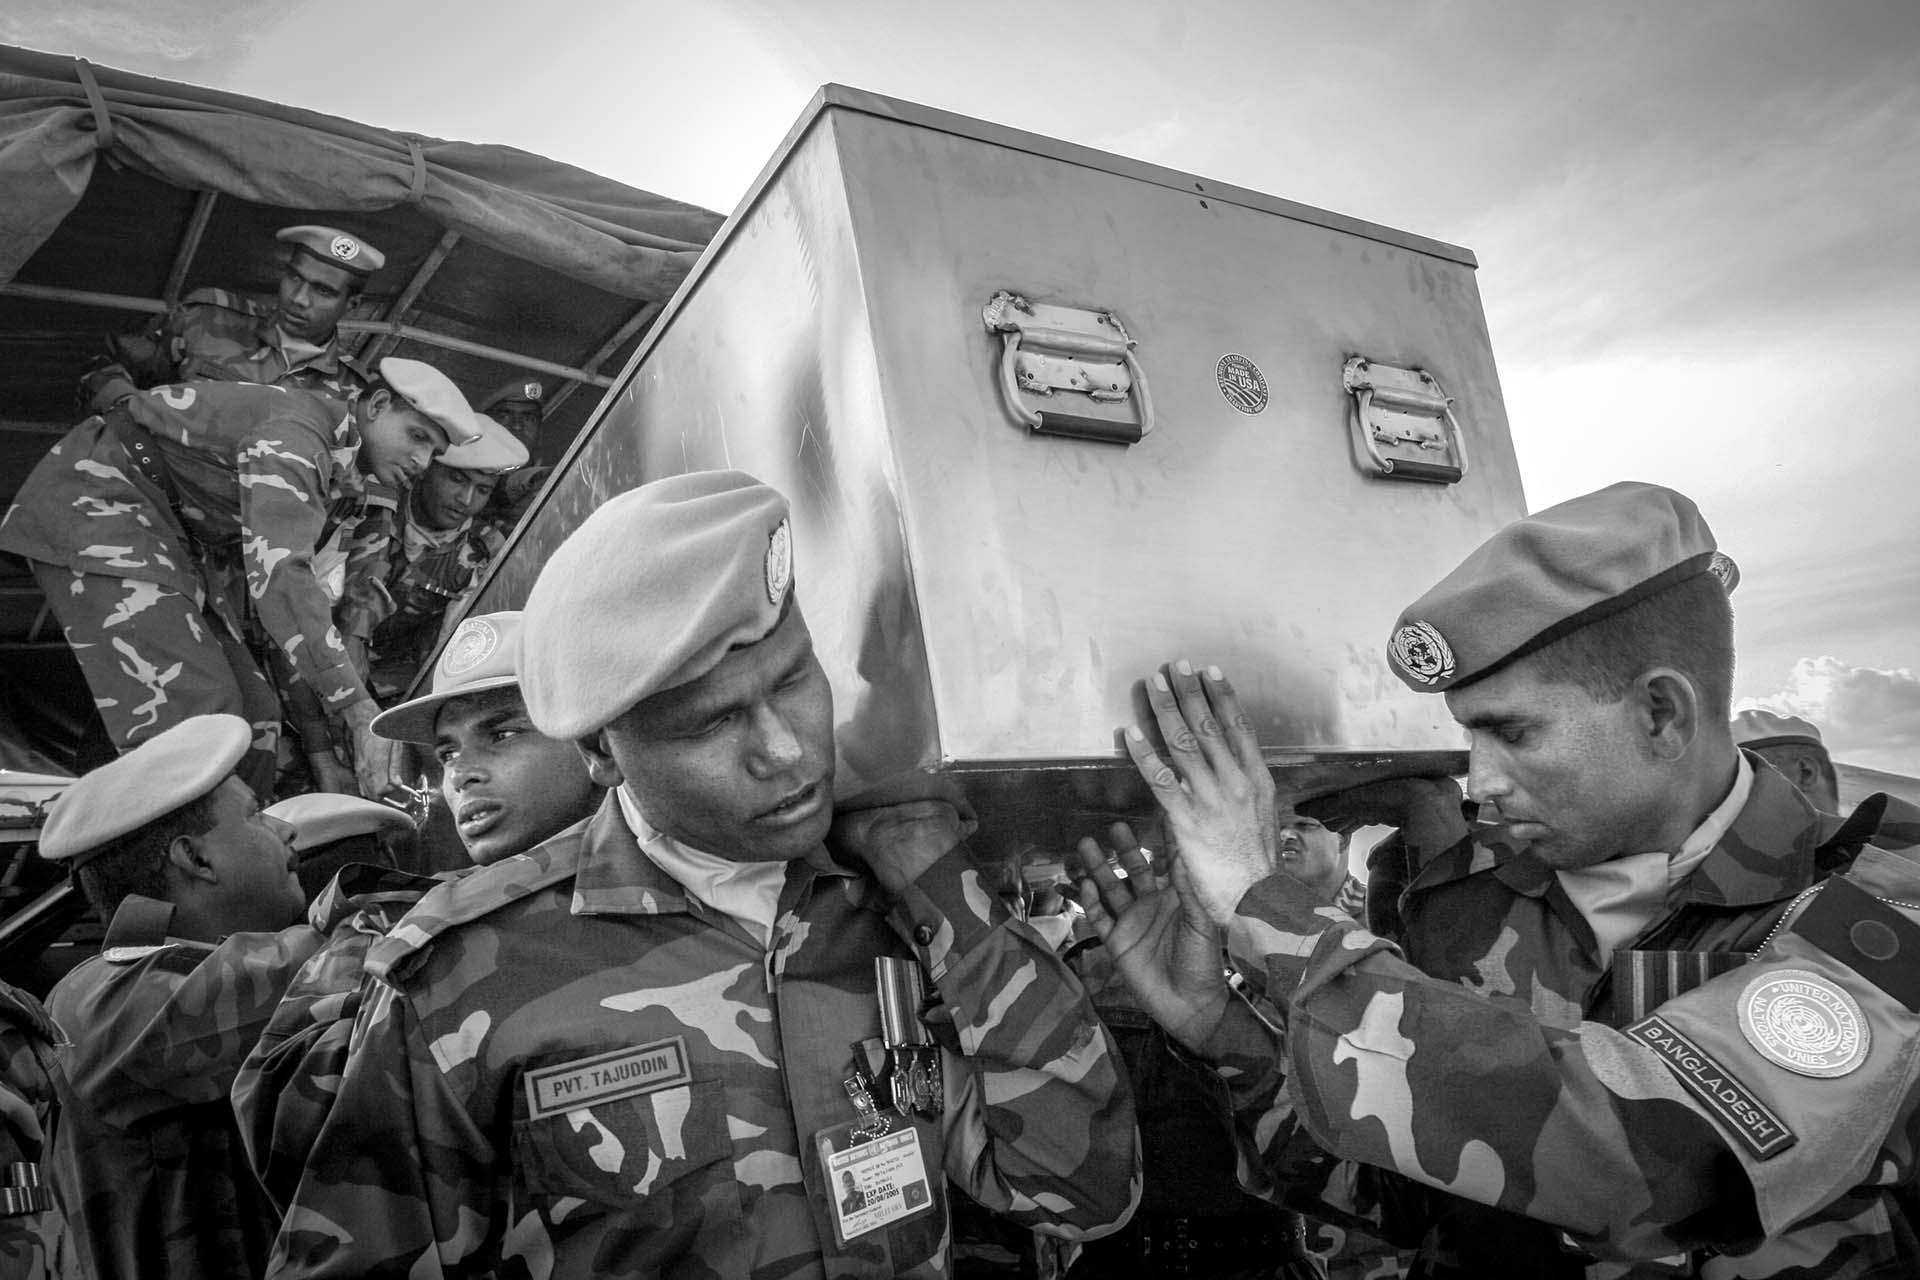 A body of Bangladeshi soldier killed in an ambush near Bunia  by a militia group is carried out of a truck to be returned to his home country.